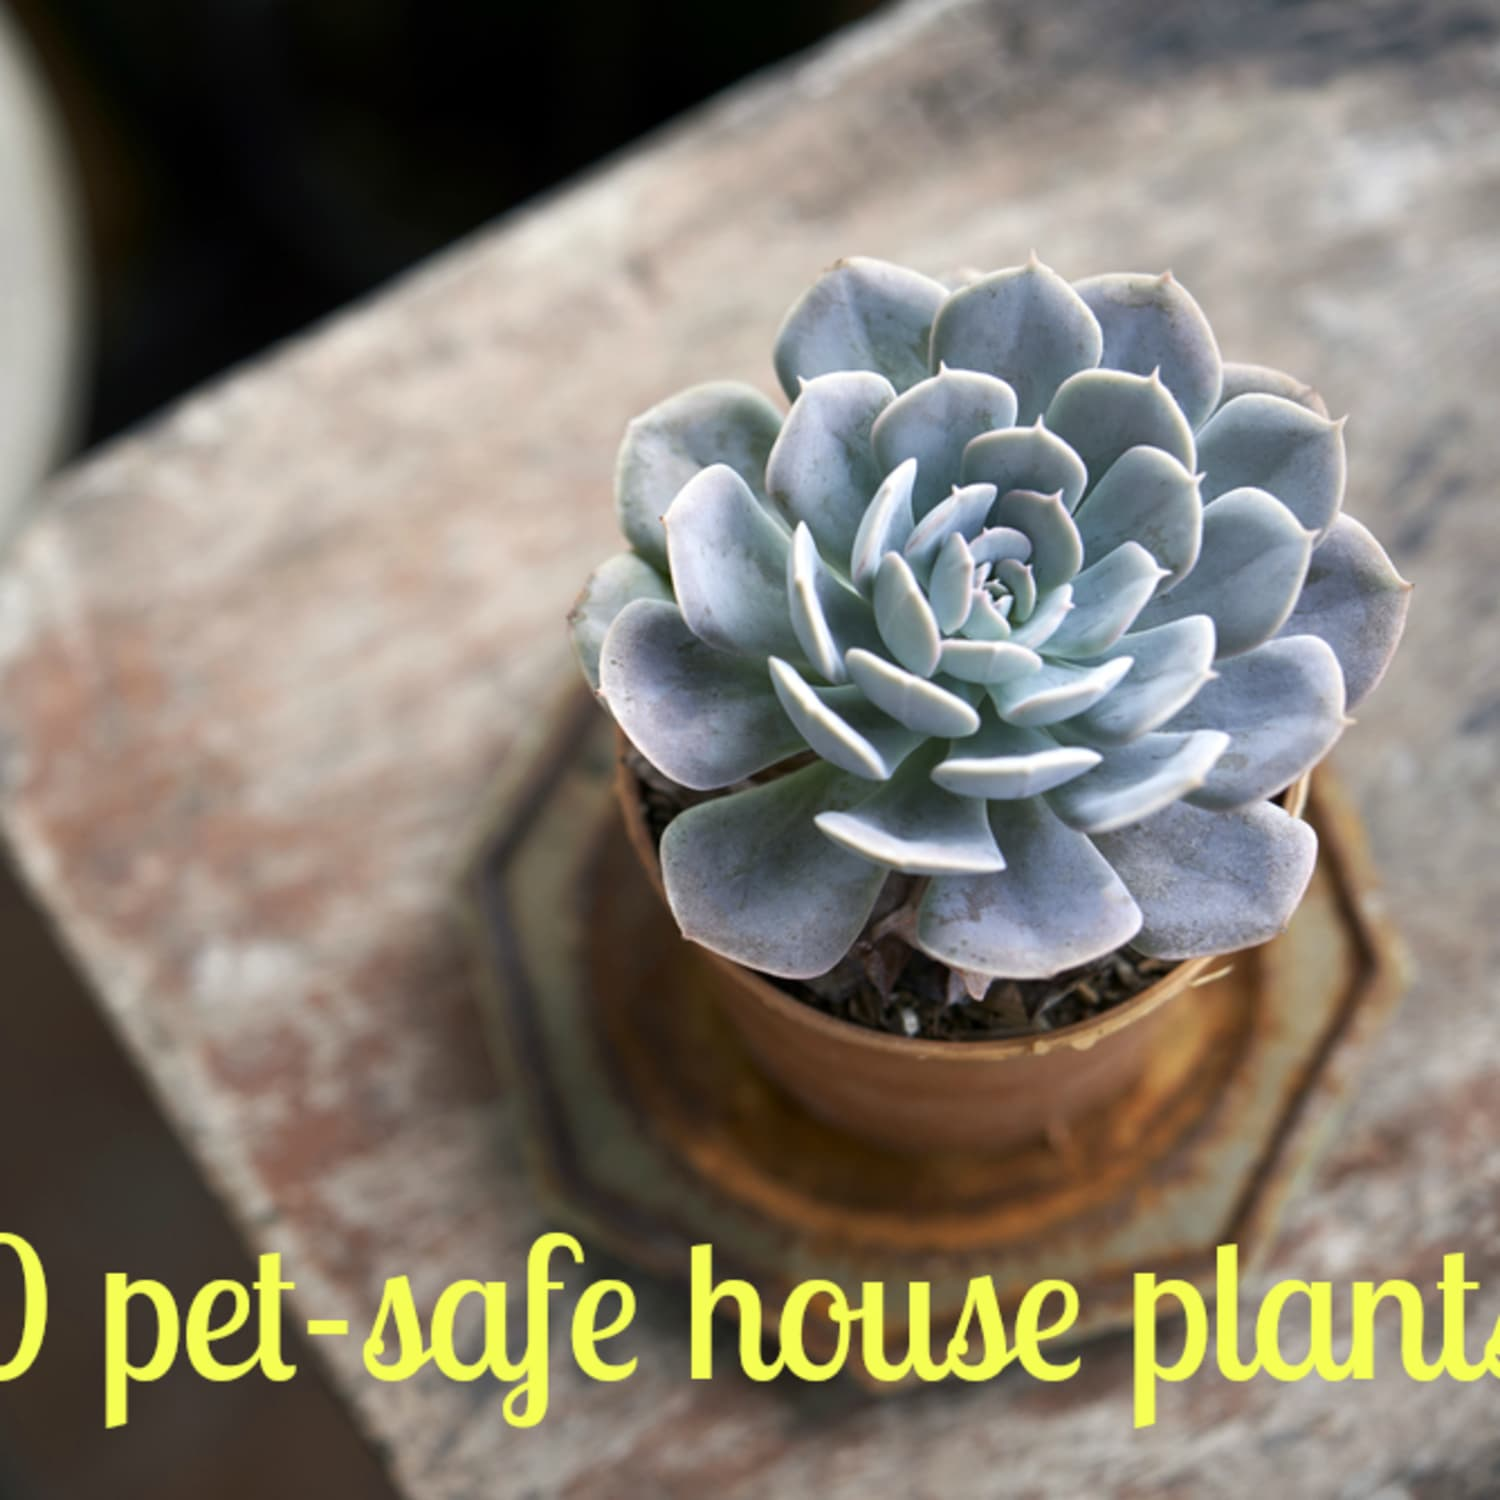 Keeping Your Pets Safe: 10 Non-Toxic House Plants ... on best houseplants, names of indoor cactus, tropical houseplants, low light houseplants, 10 easy houseplants, names of vegetables, names of plants, names of indoor begonias, names of flowers, most common houseplants, names of shrubs, names of indoor trees, names of vines, names of indoor palms, names of books,